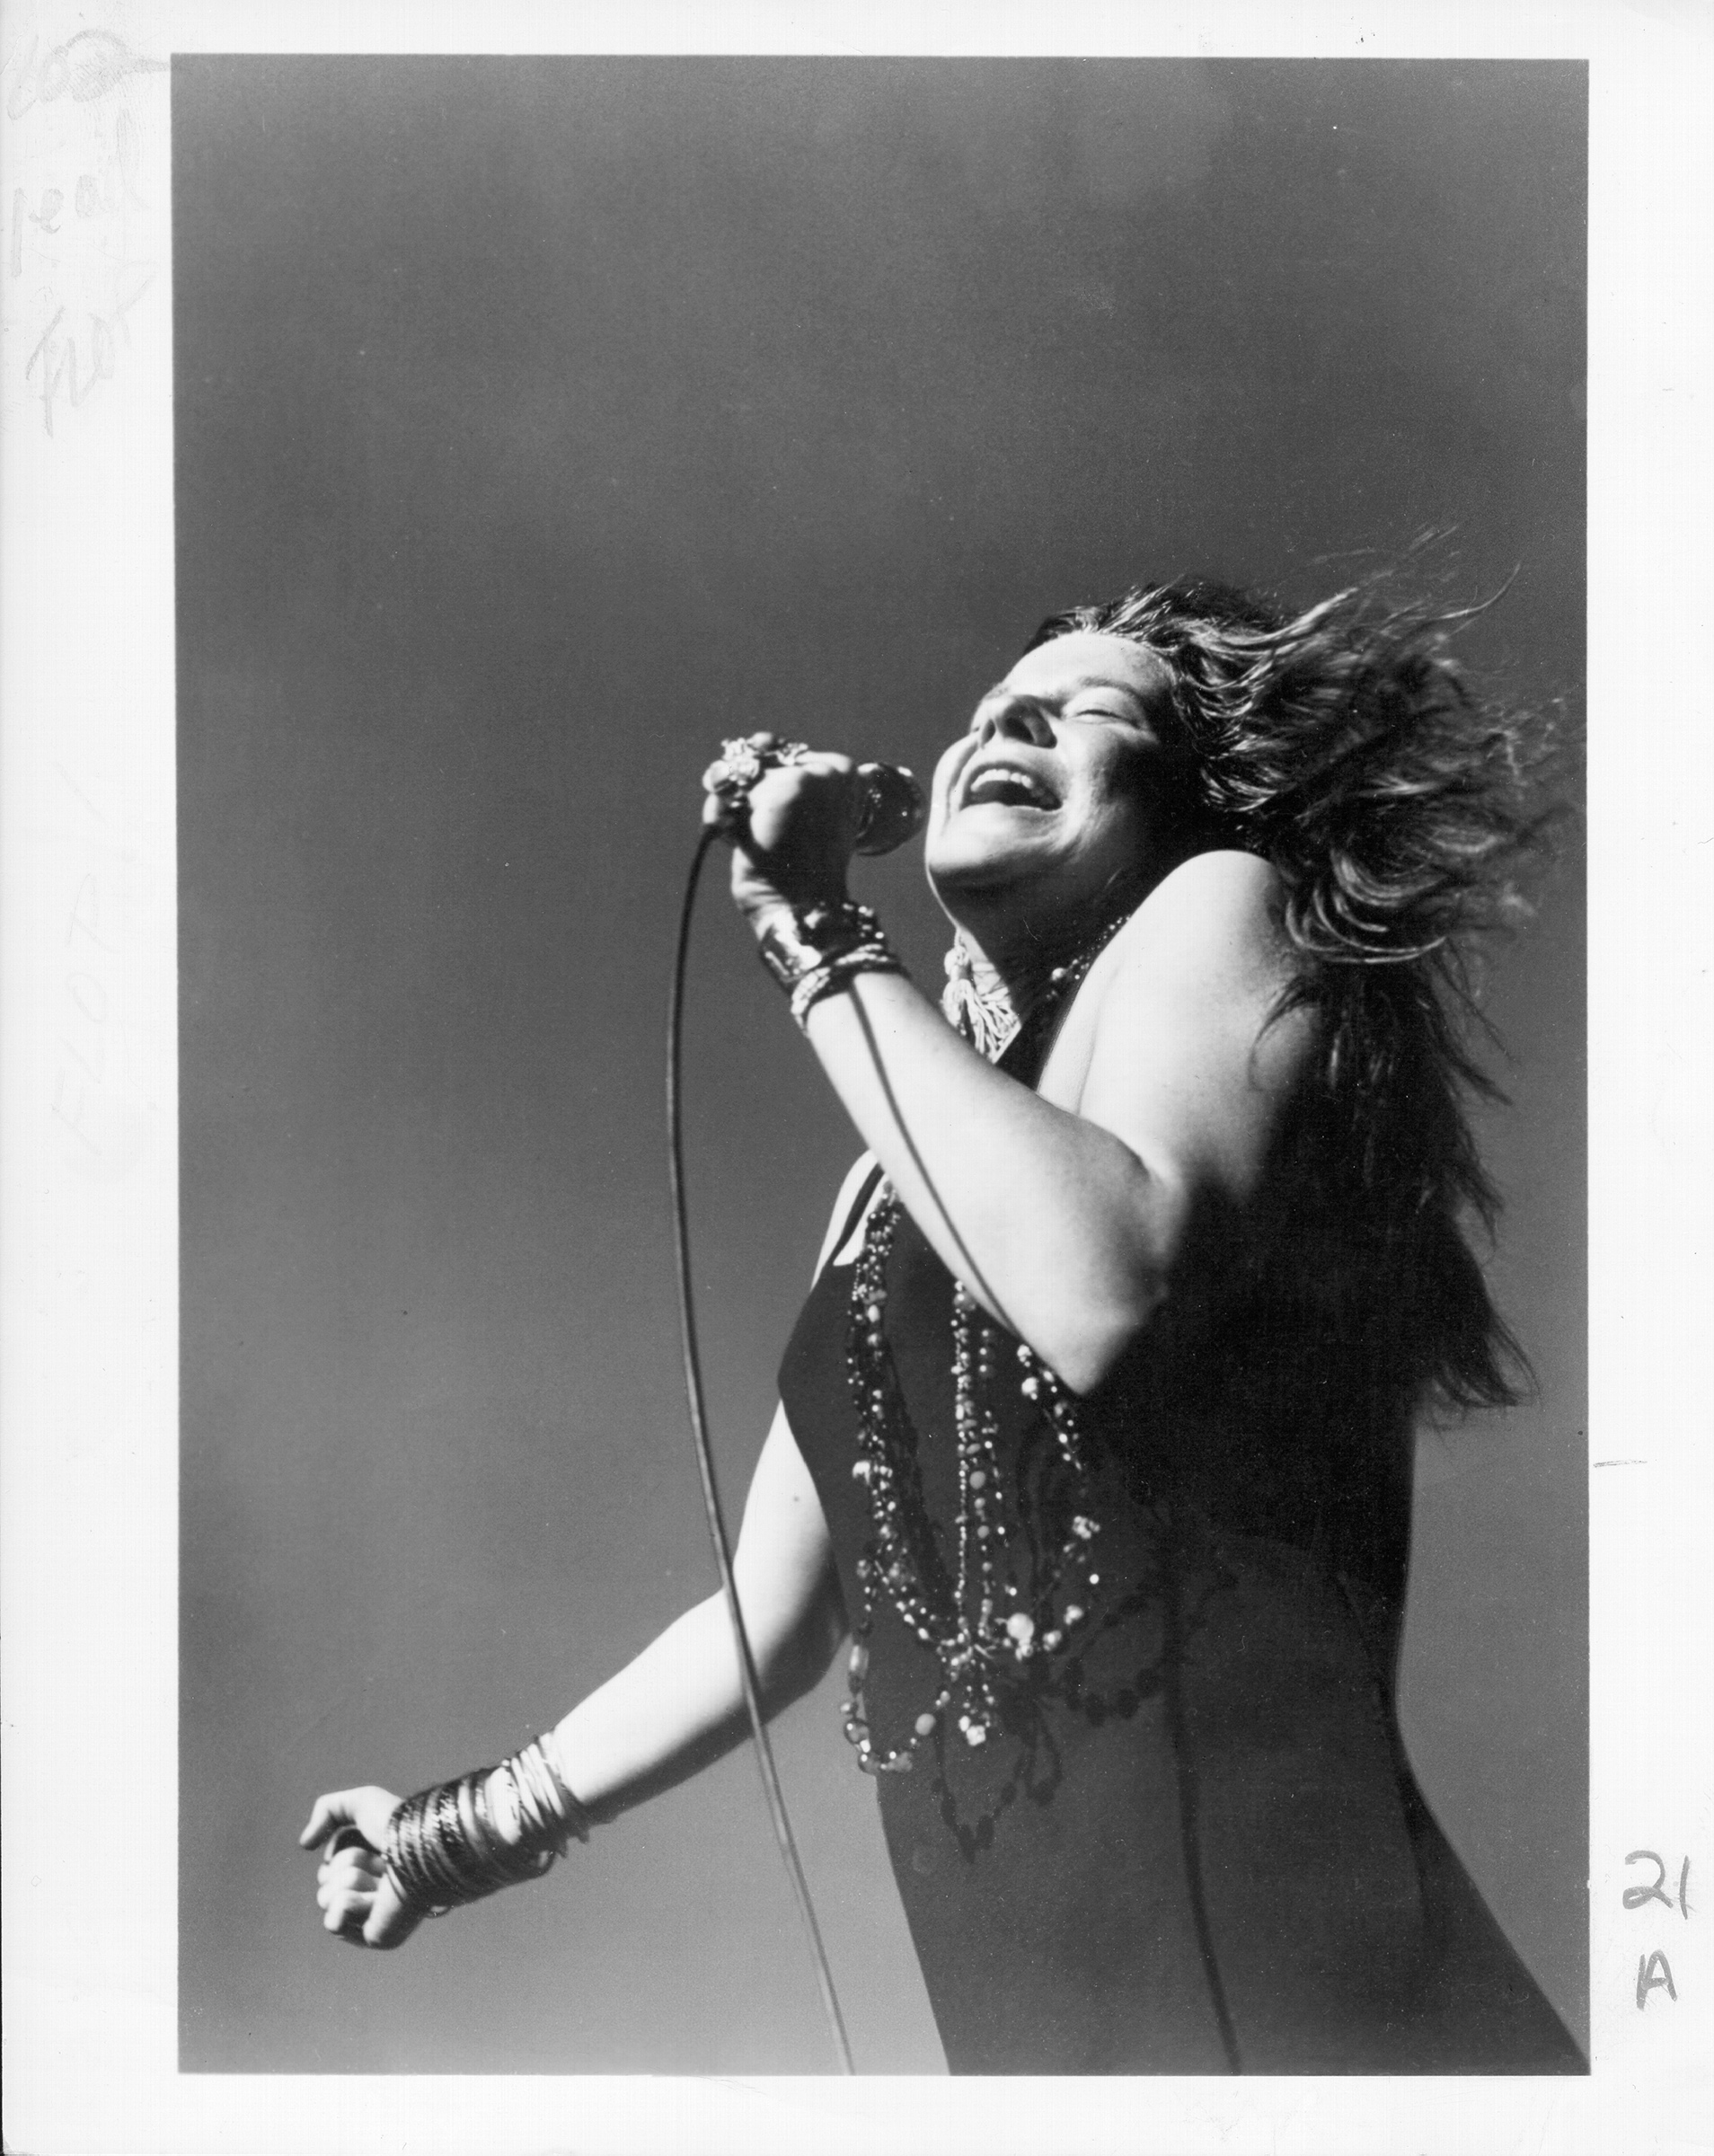 Singer Janis Joplin performs onstage at the Santa Clara County Fairgrounds for the Northern California Folk-Rock Festival on May 18, 1968 in San Jose, California.